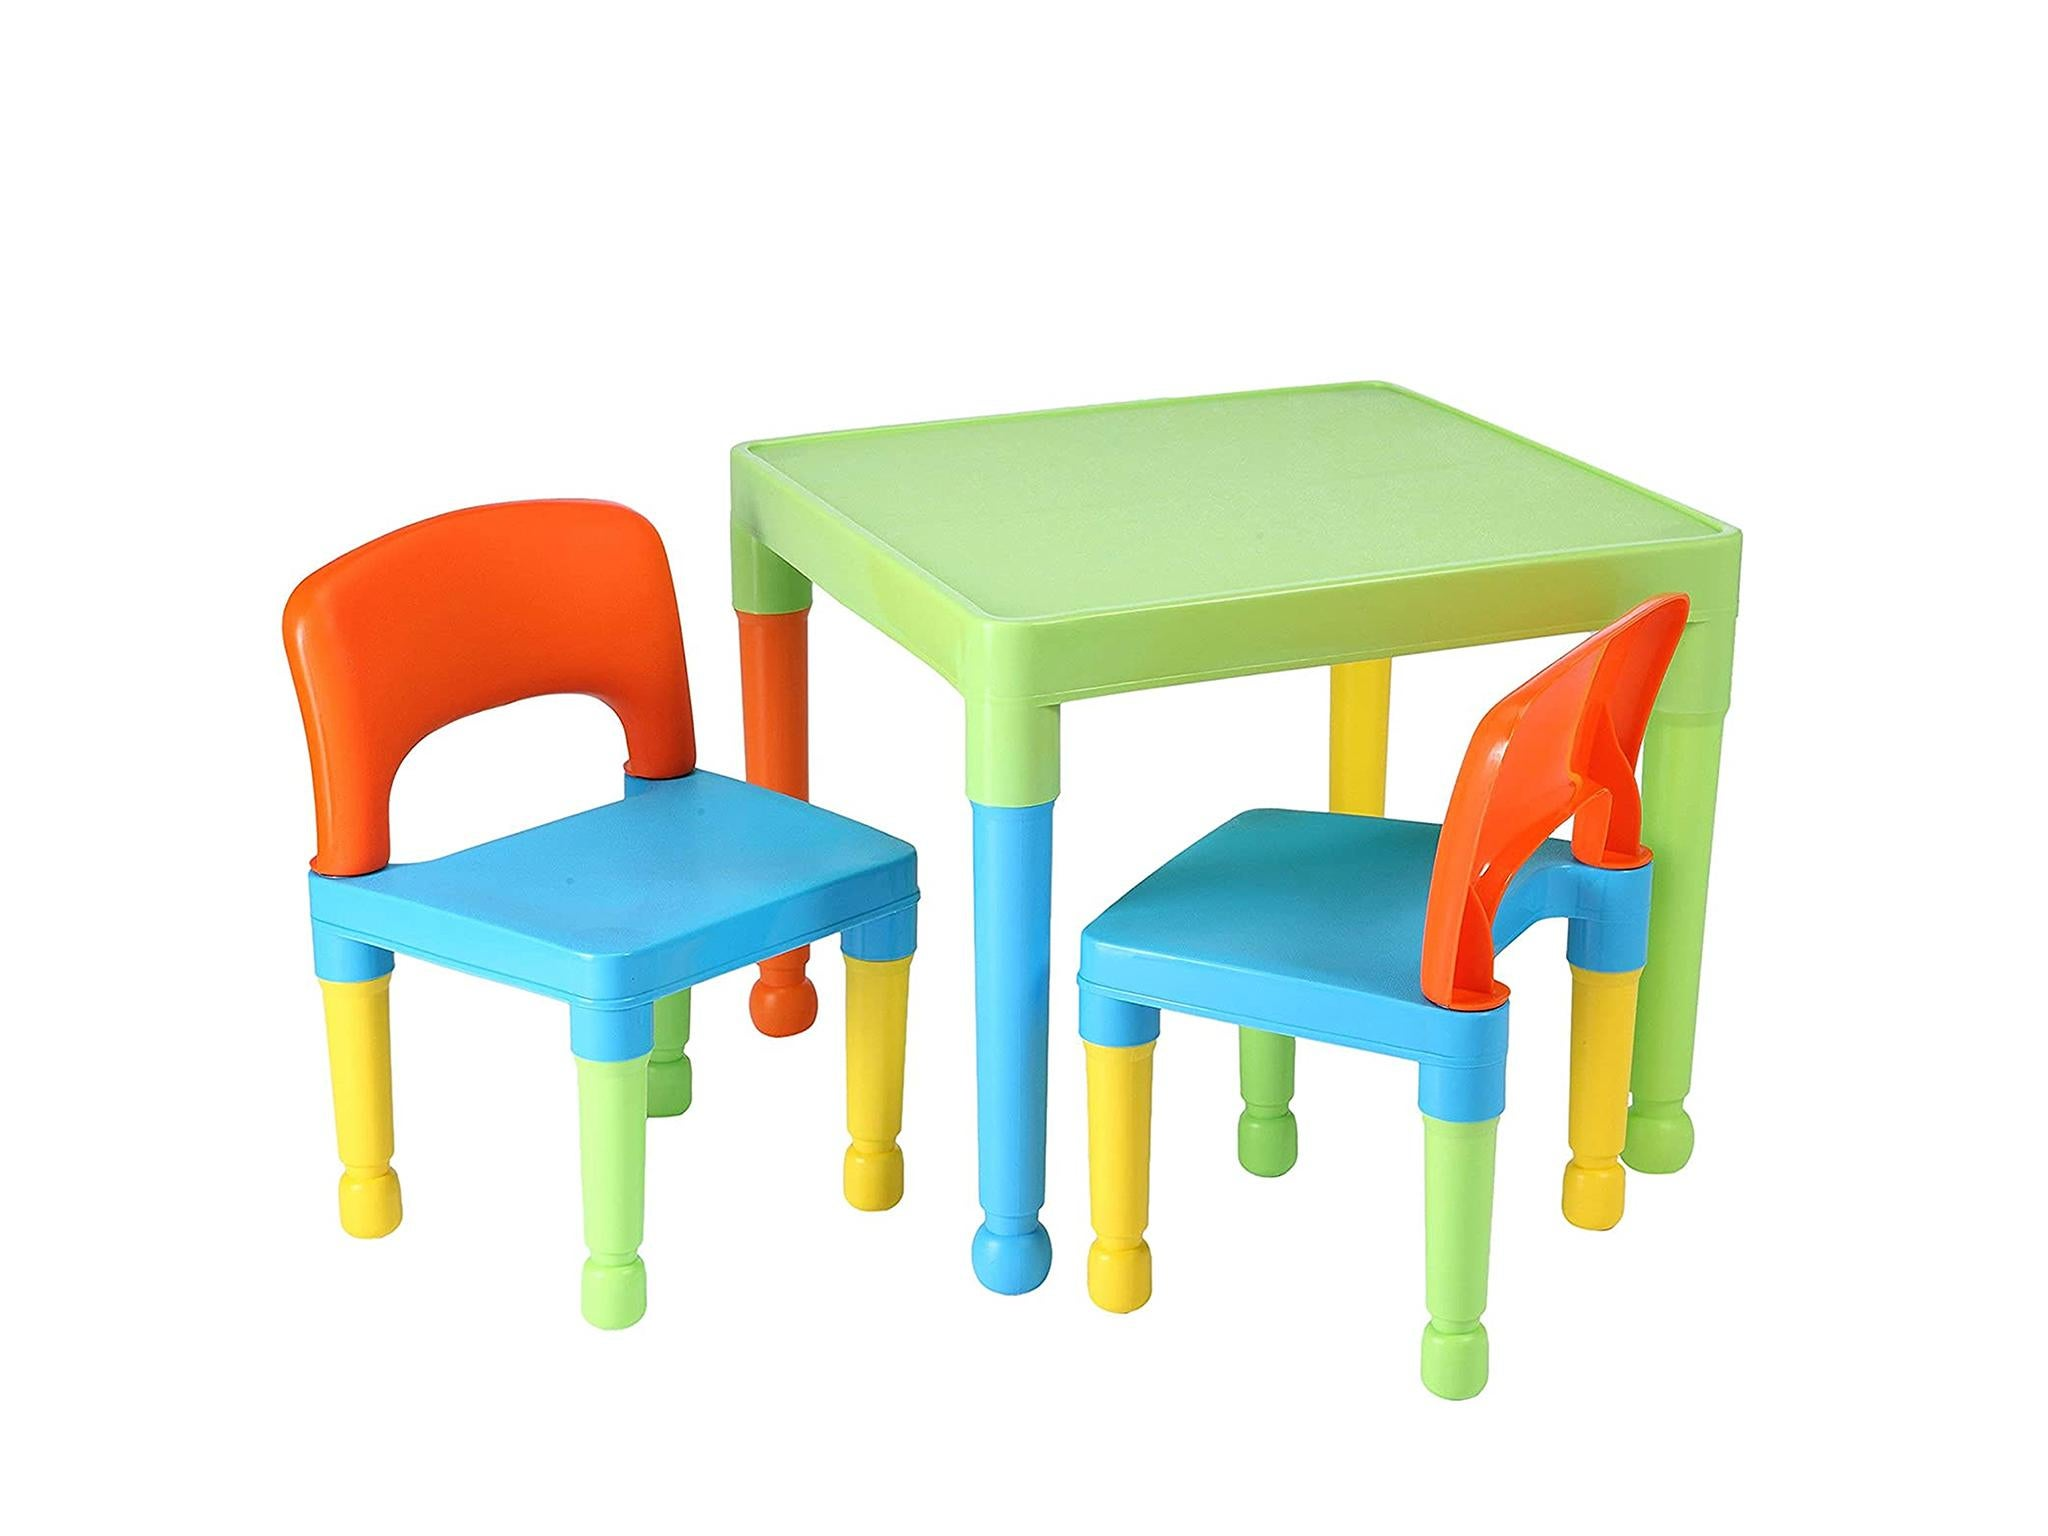 Best kids' table and chairs sets to encourage learning and